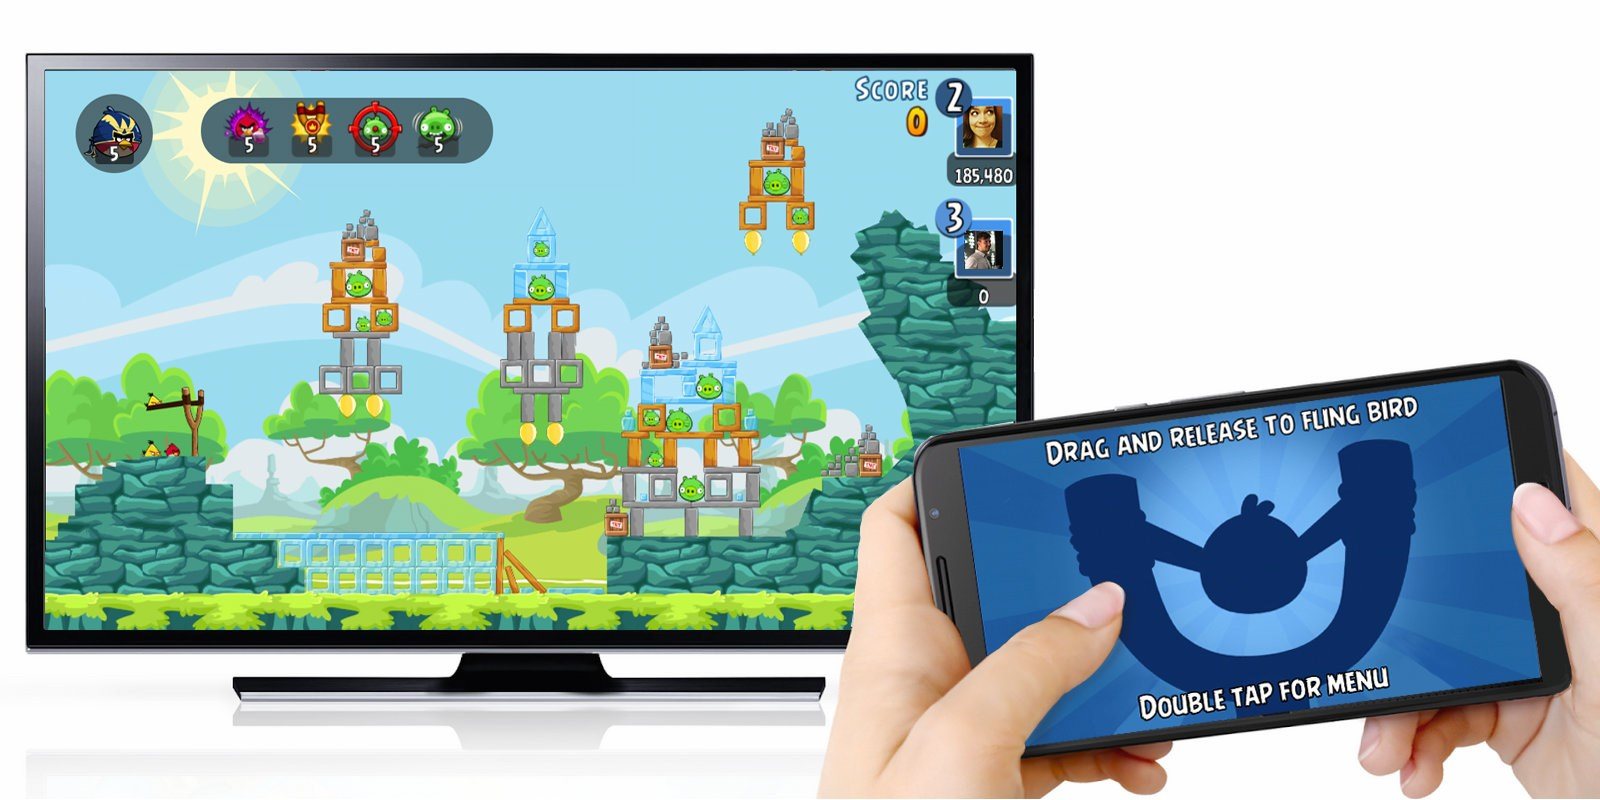 Angry Birds comes to the Chromecast in time for the holidays